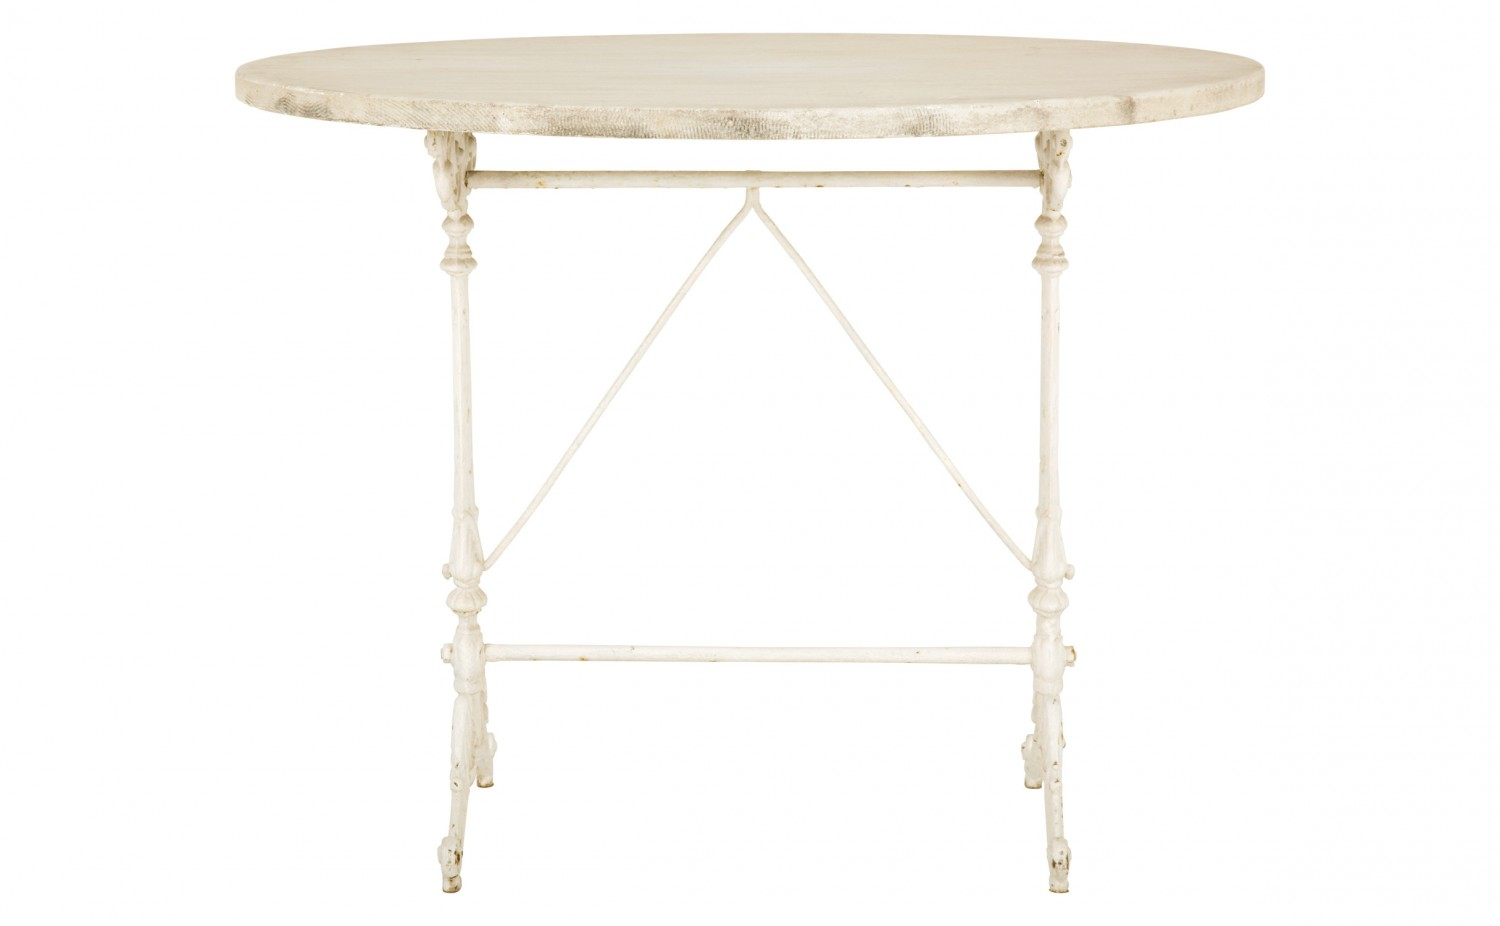 antique marble top bistro table jayson home accent loading zoom tall acrylic circle coffee retro lounge furniture kitchen kids drum stool small decorative lamps unique patio